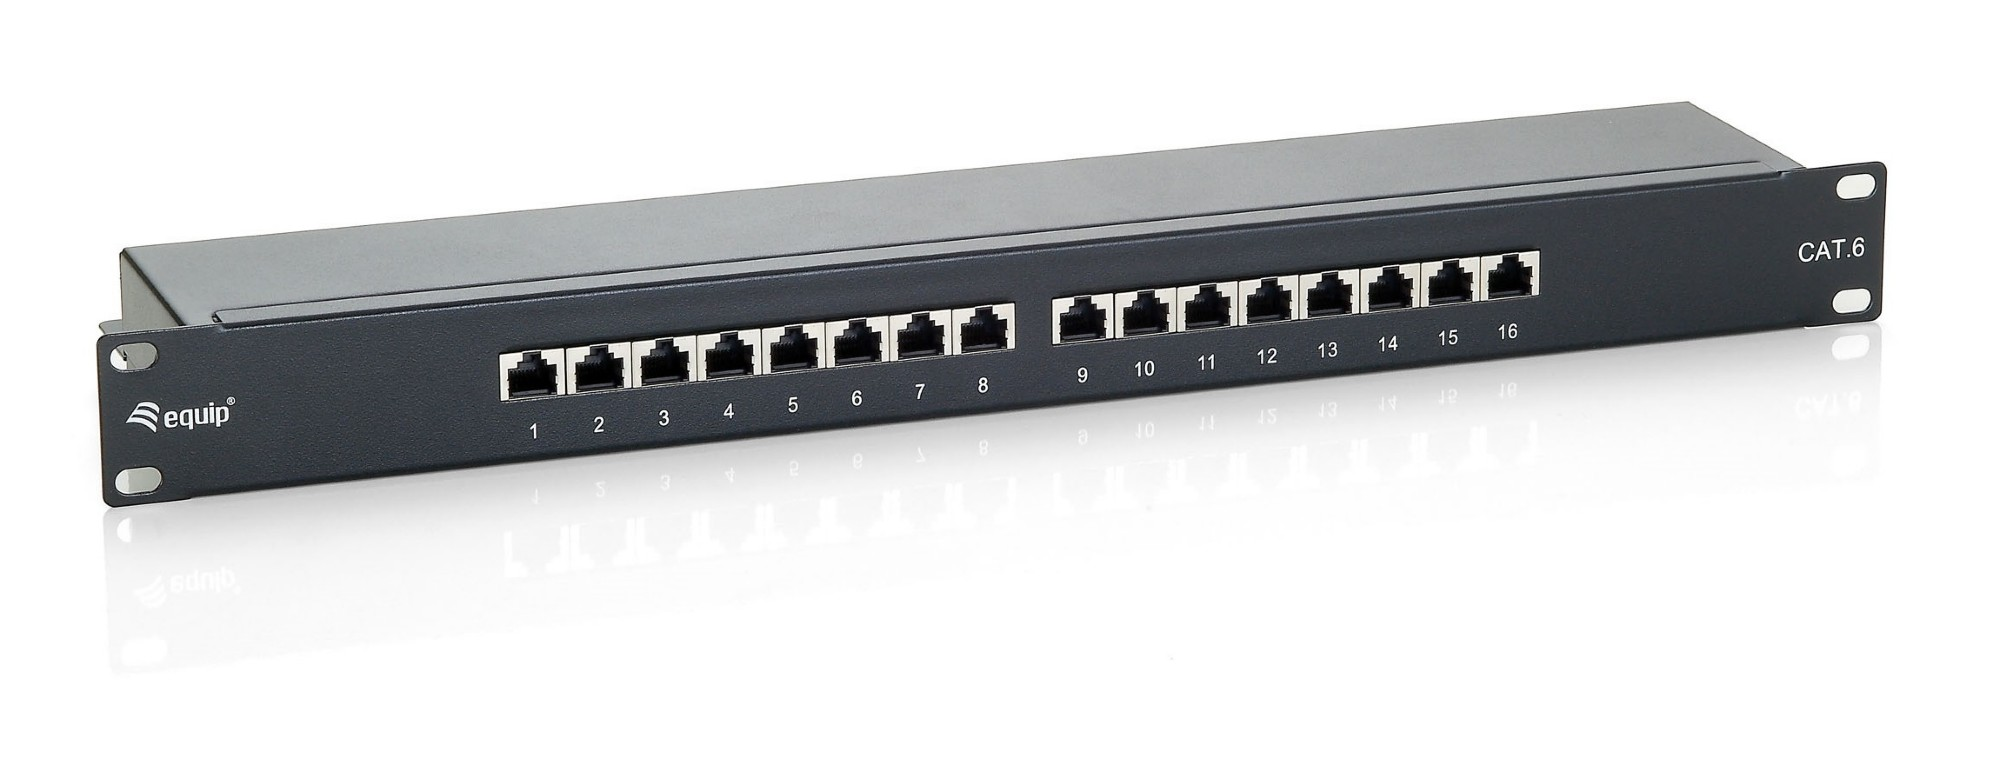 EQUIP 326416 16-PORT CAT.6 SHIELDED PATCH PANEL